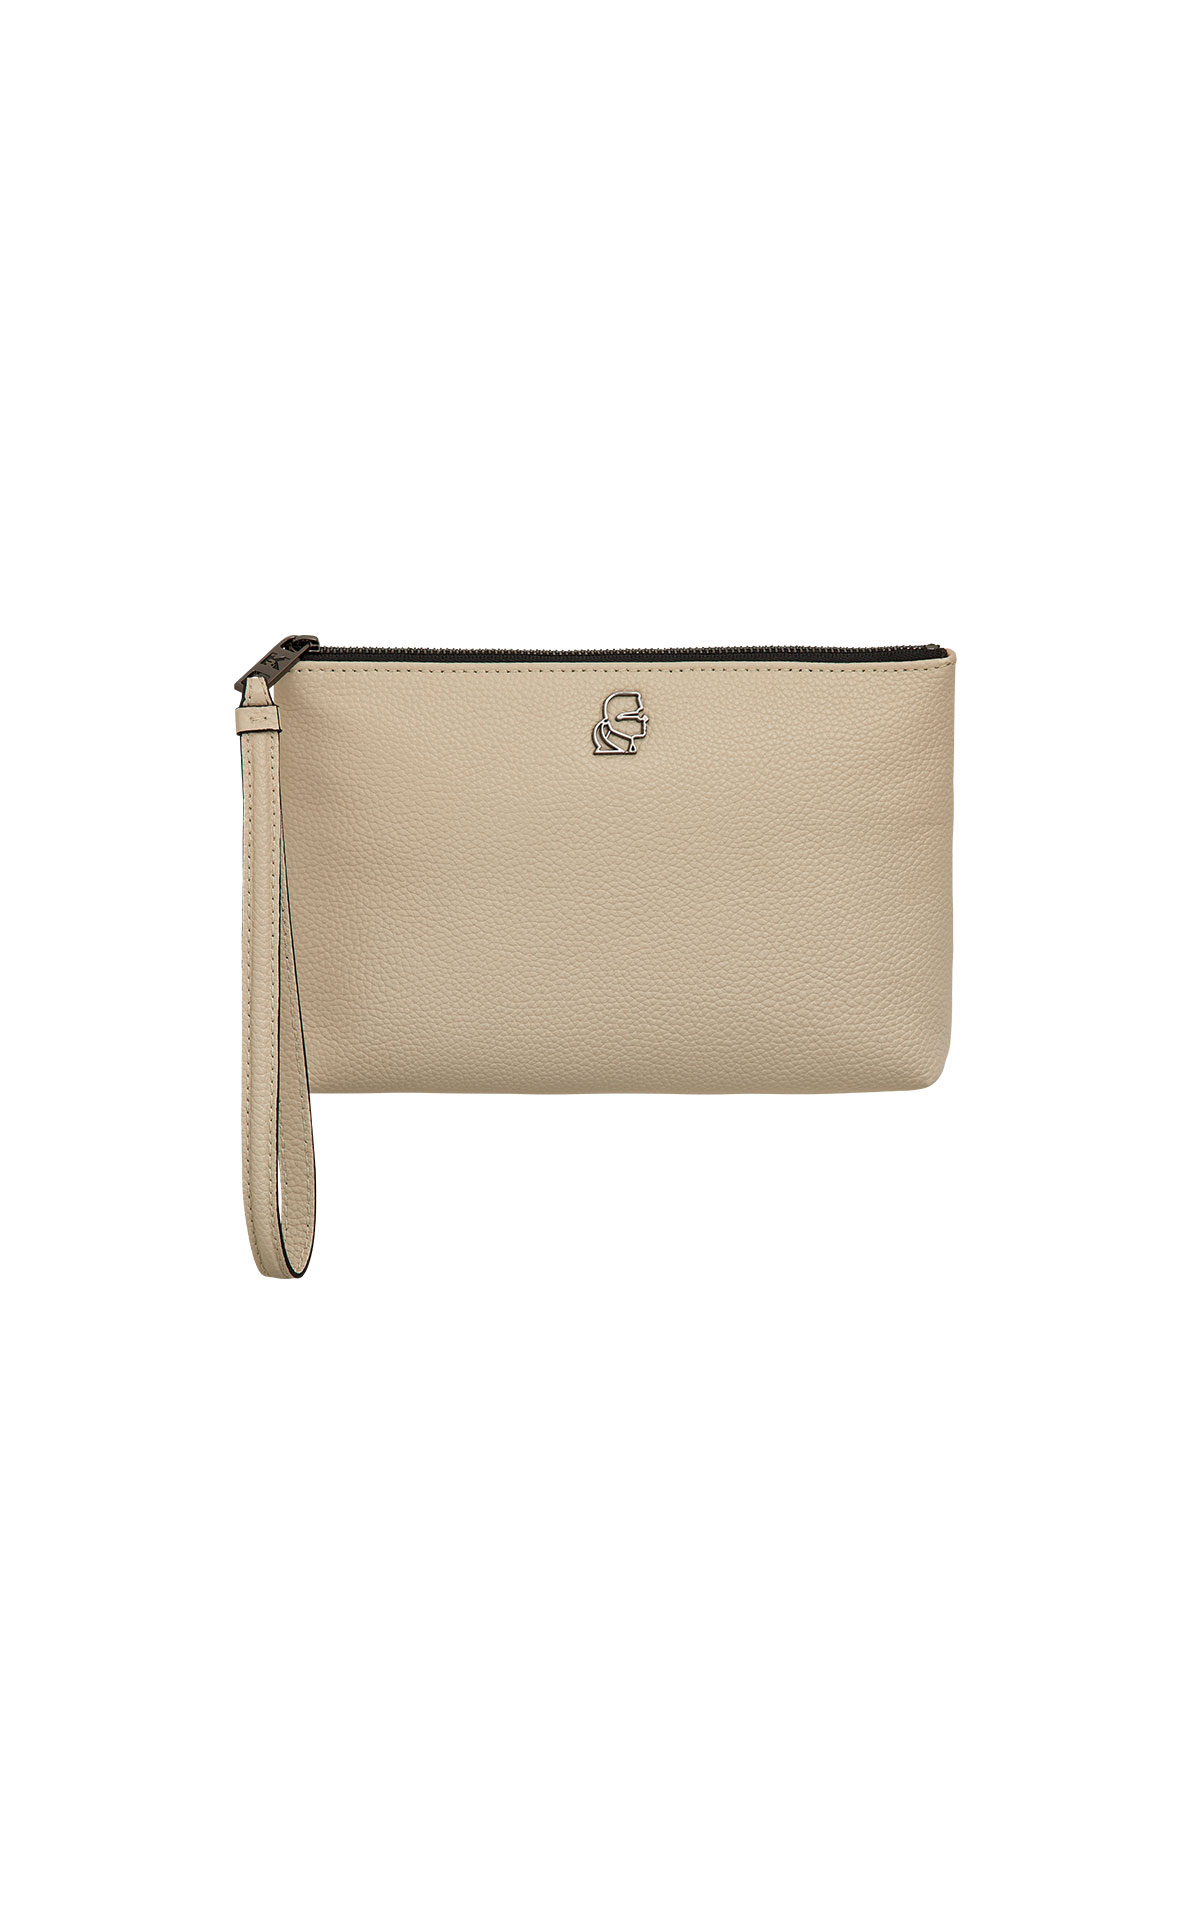 Karl Lagerfeld k/pebble wristlet at The Bicester Village Shopping Collection